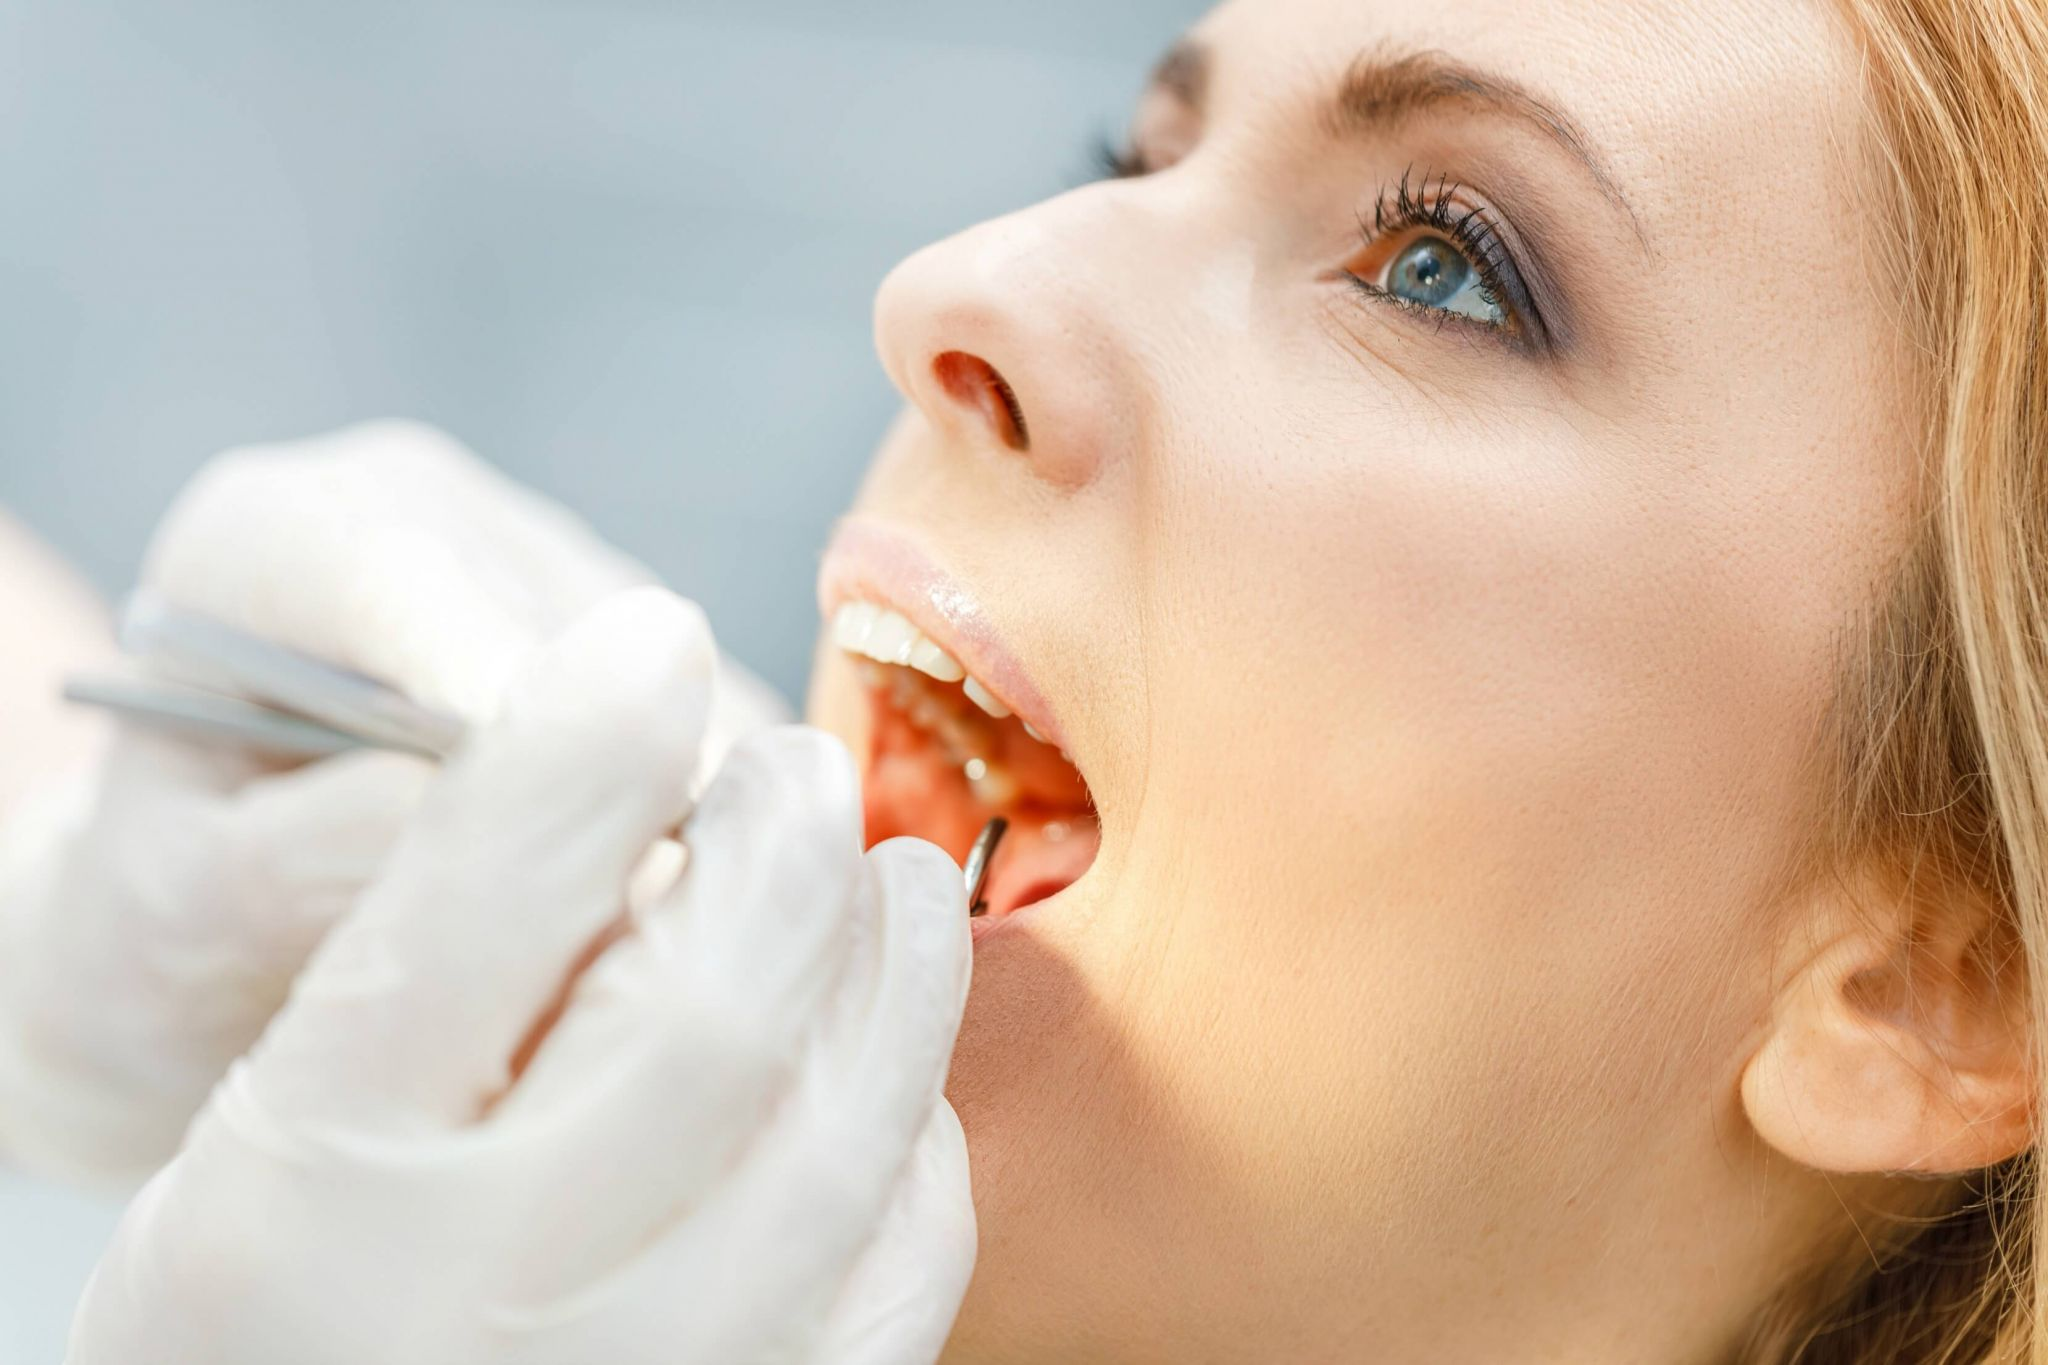 problems with my teeth - woman having a dental checkup